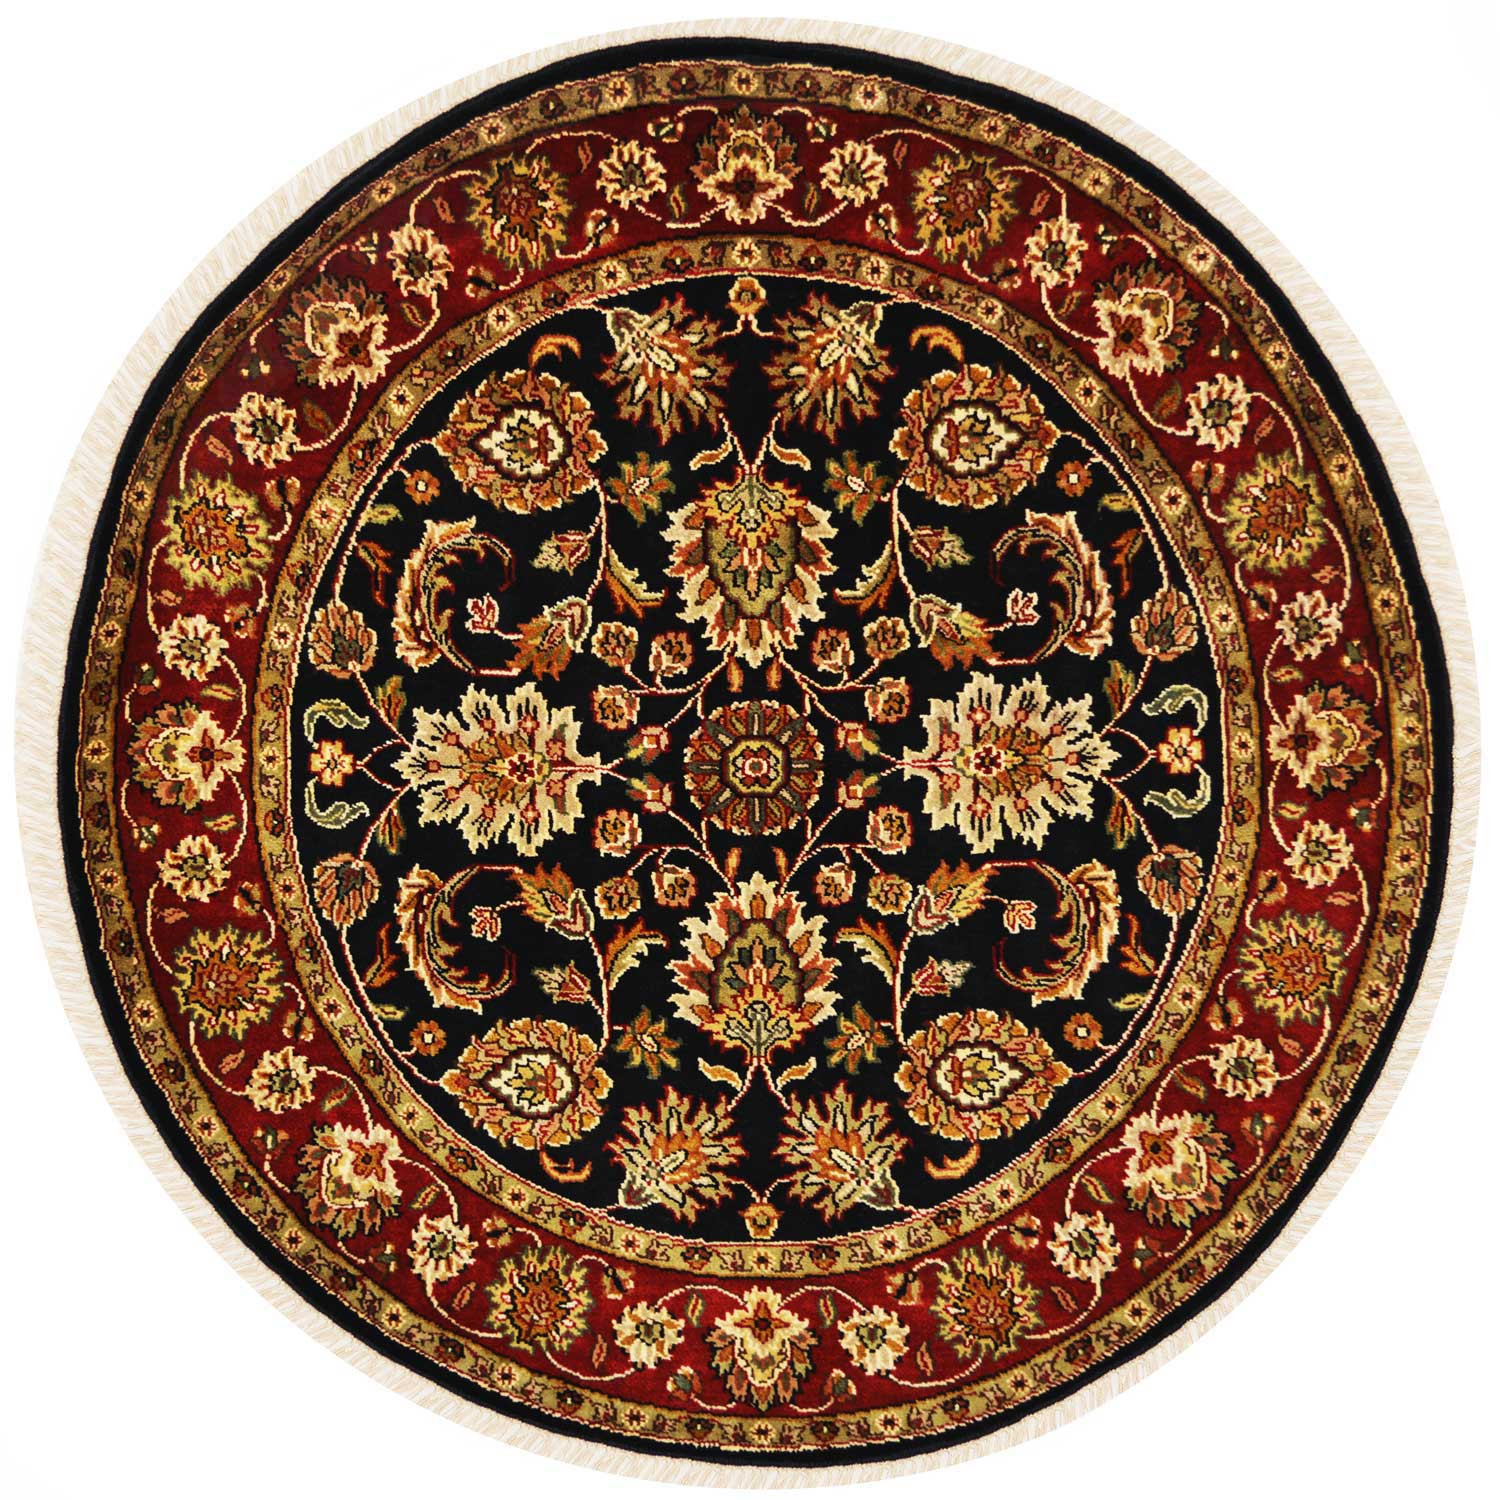 Get Round Wool Rugs Online And Shop Mughal Motif Rug At